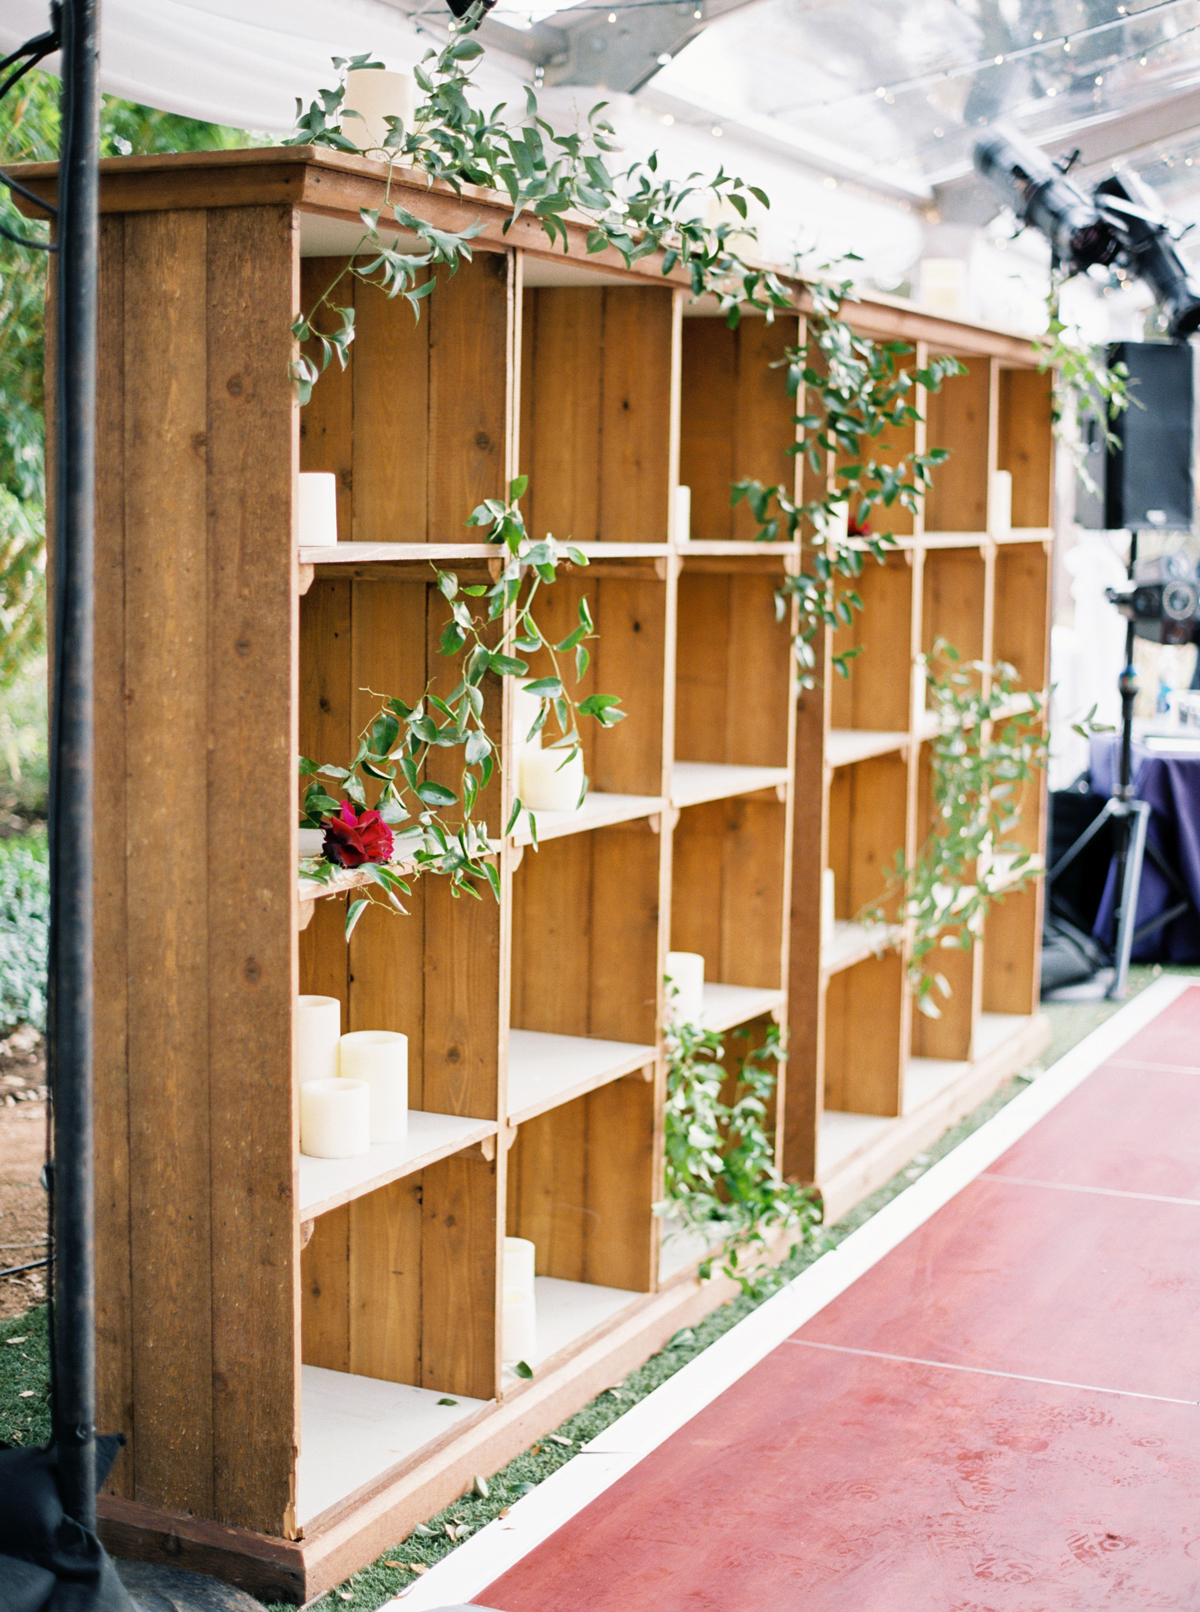 greenery garland and single rose adhered to shelves